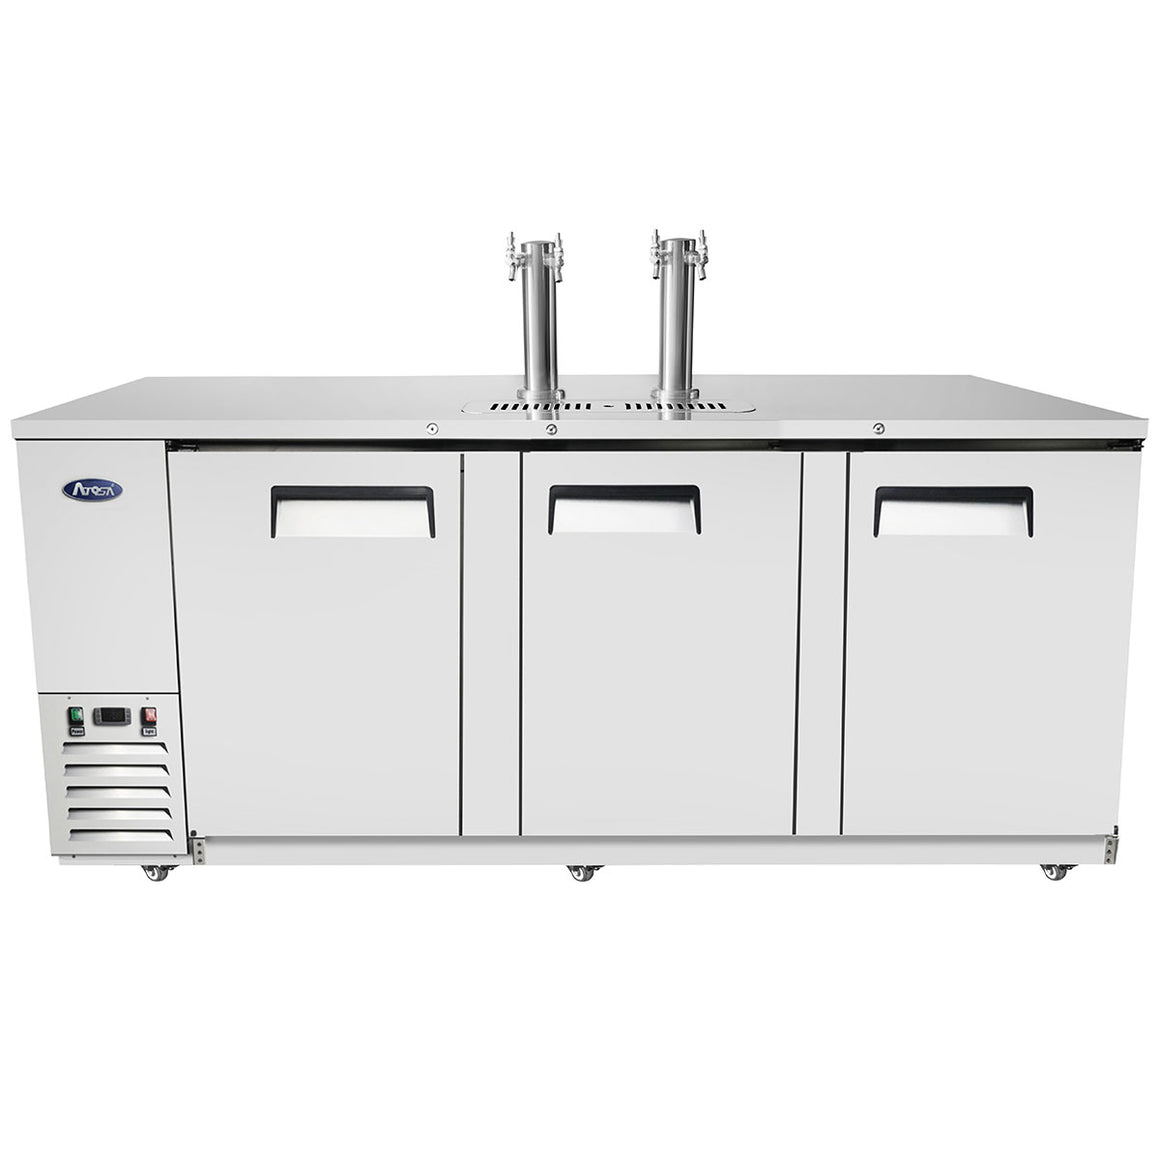 Atosa - 90'' Keg Cooler - Stainless Steel Exterior & Interior - Dual Faucet Tower - 21.5 Cubic Ft